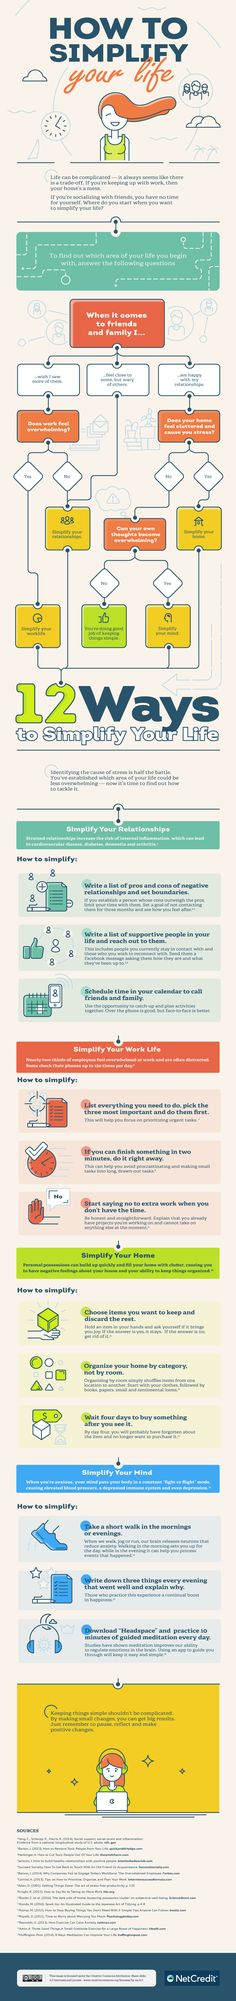 How to Simplify Your Life #Infographic #HowTo